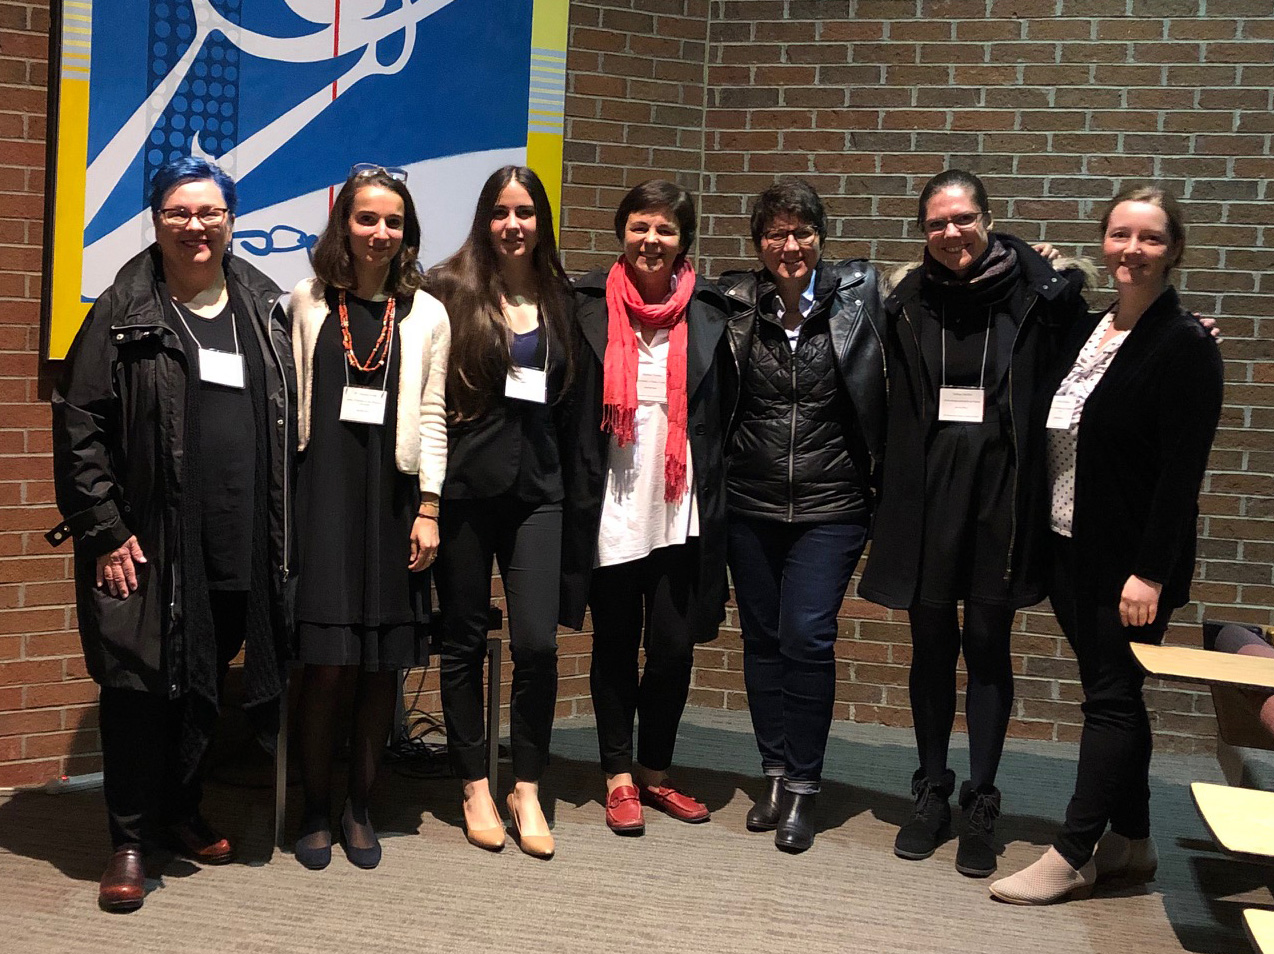 Roundtable participants (from l-r) Anne Stanton, Maria Alessia Rossi (organizer), Konstantina Karterouli, Marina Vicelja, Isabelle Marchesin, Sabine Maffre, and Jessica Savage (organizer) at the Kalamazoo Congress.